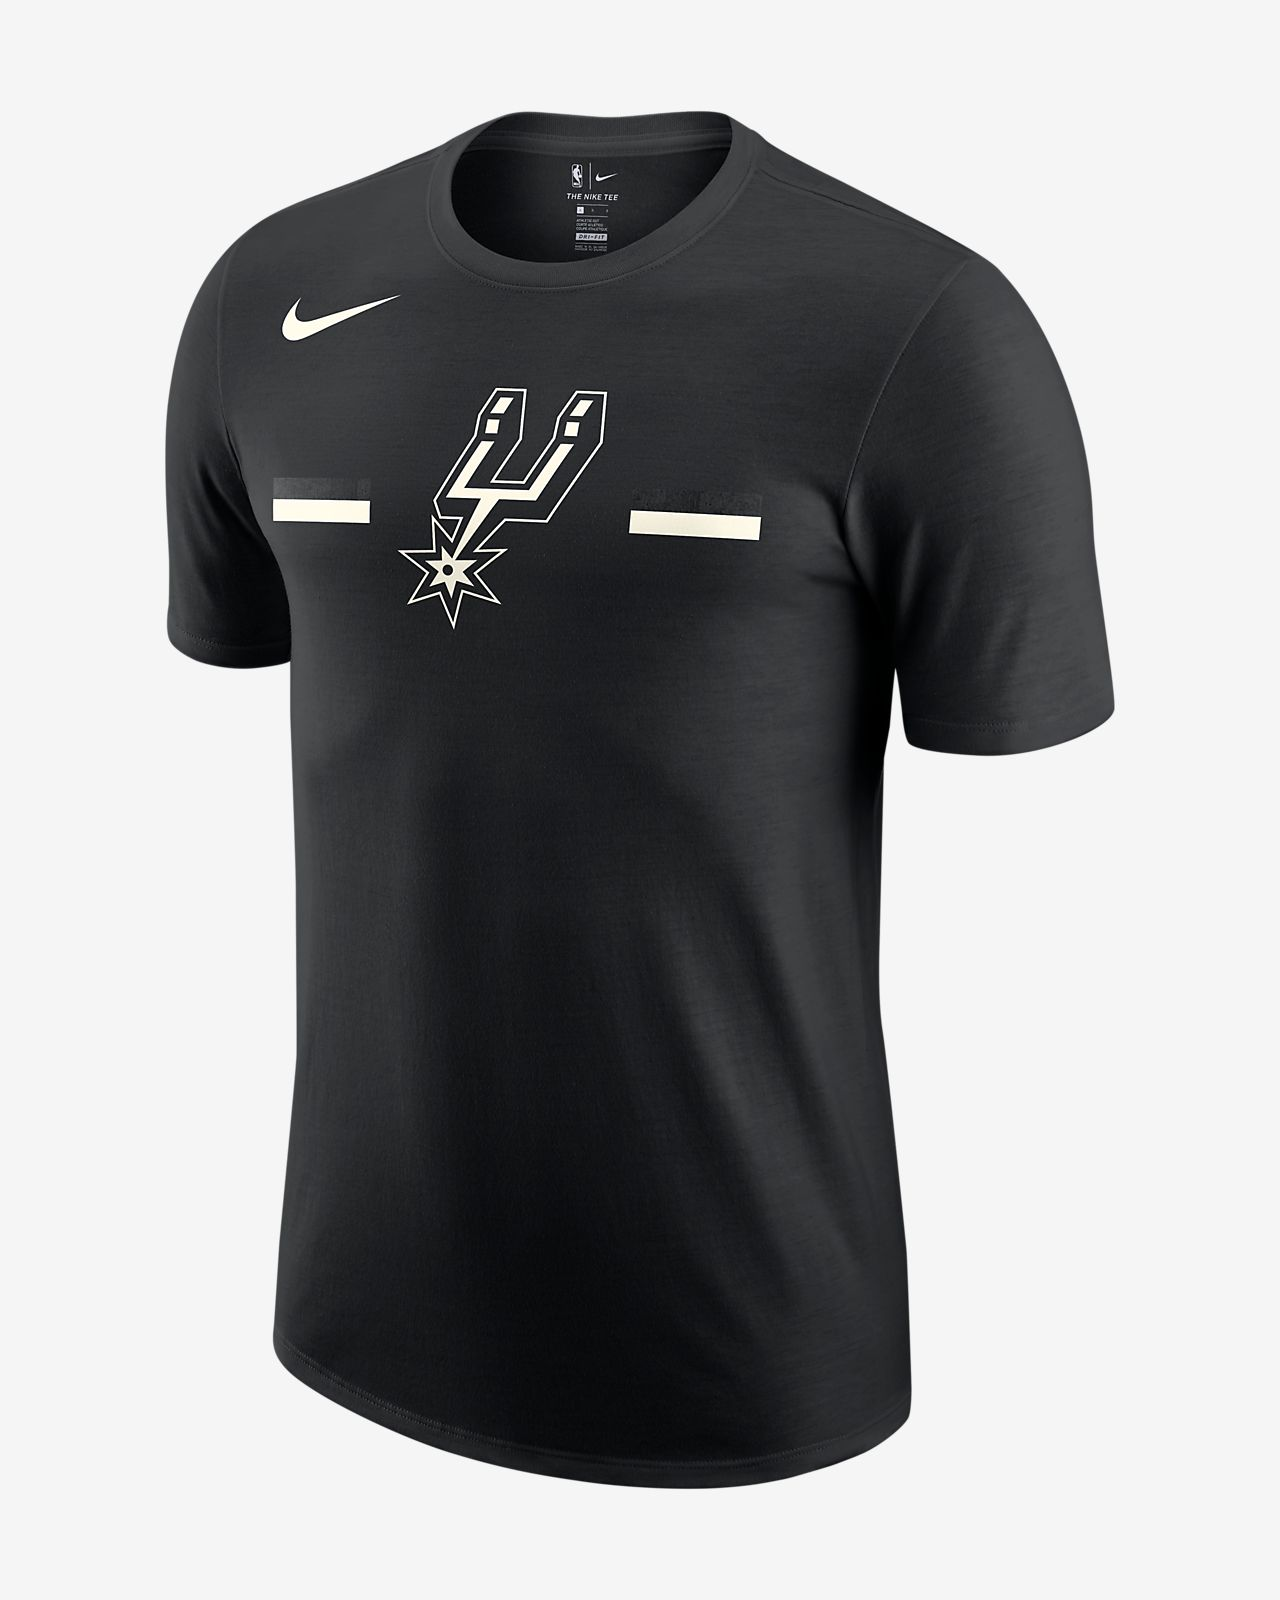 San Antonio Spurs Nike Dri-FIT 男款 NBA T 恤